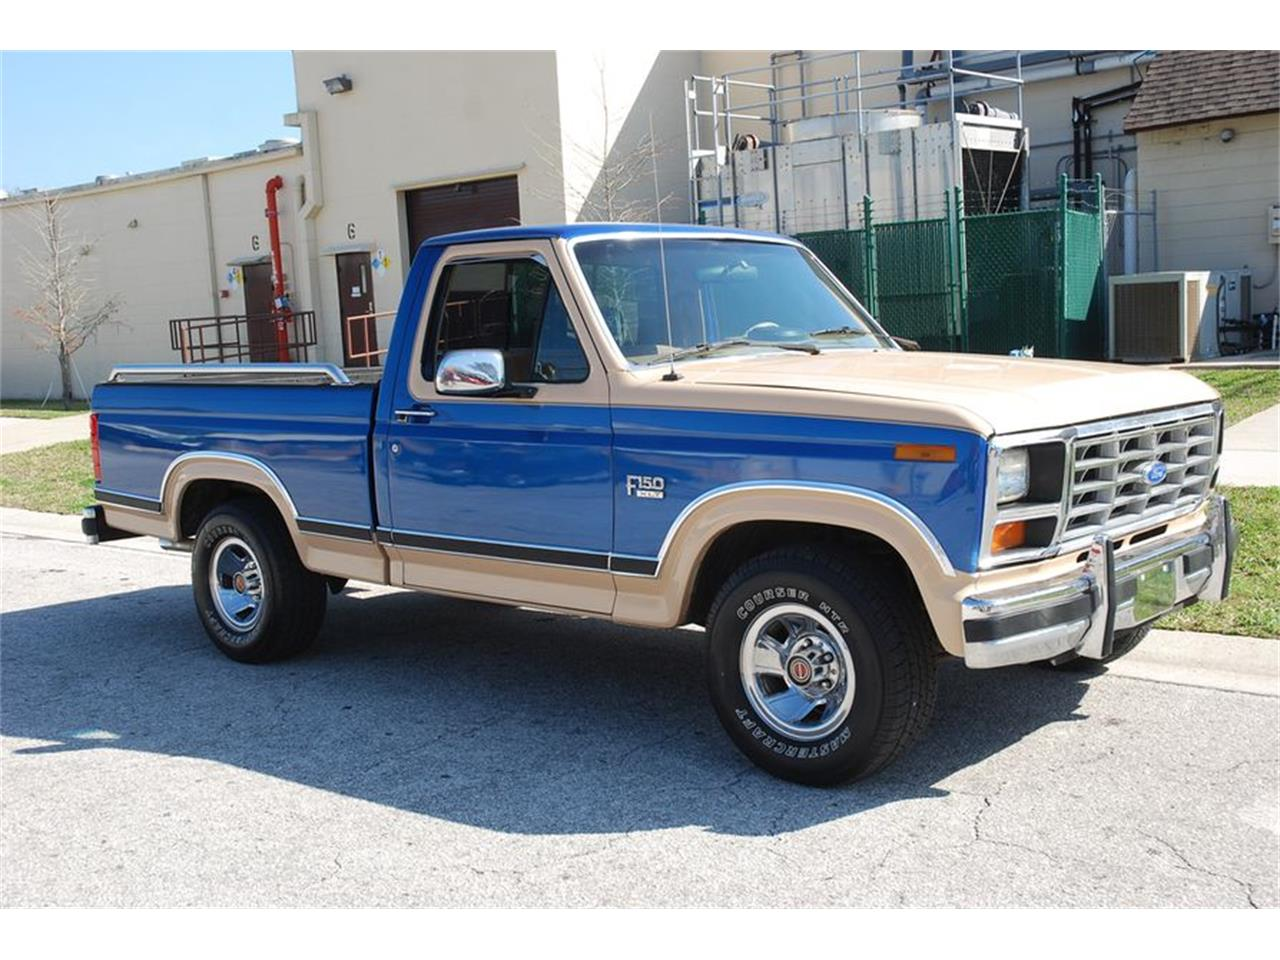 Large picture of 84 f150 muoi